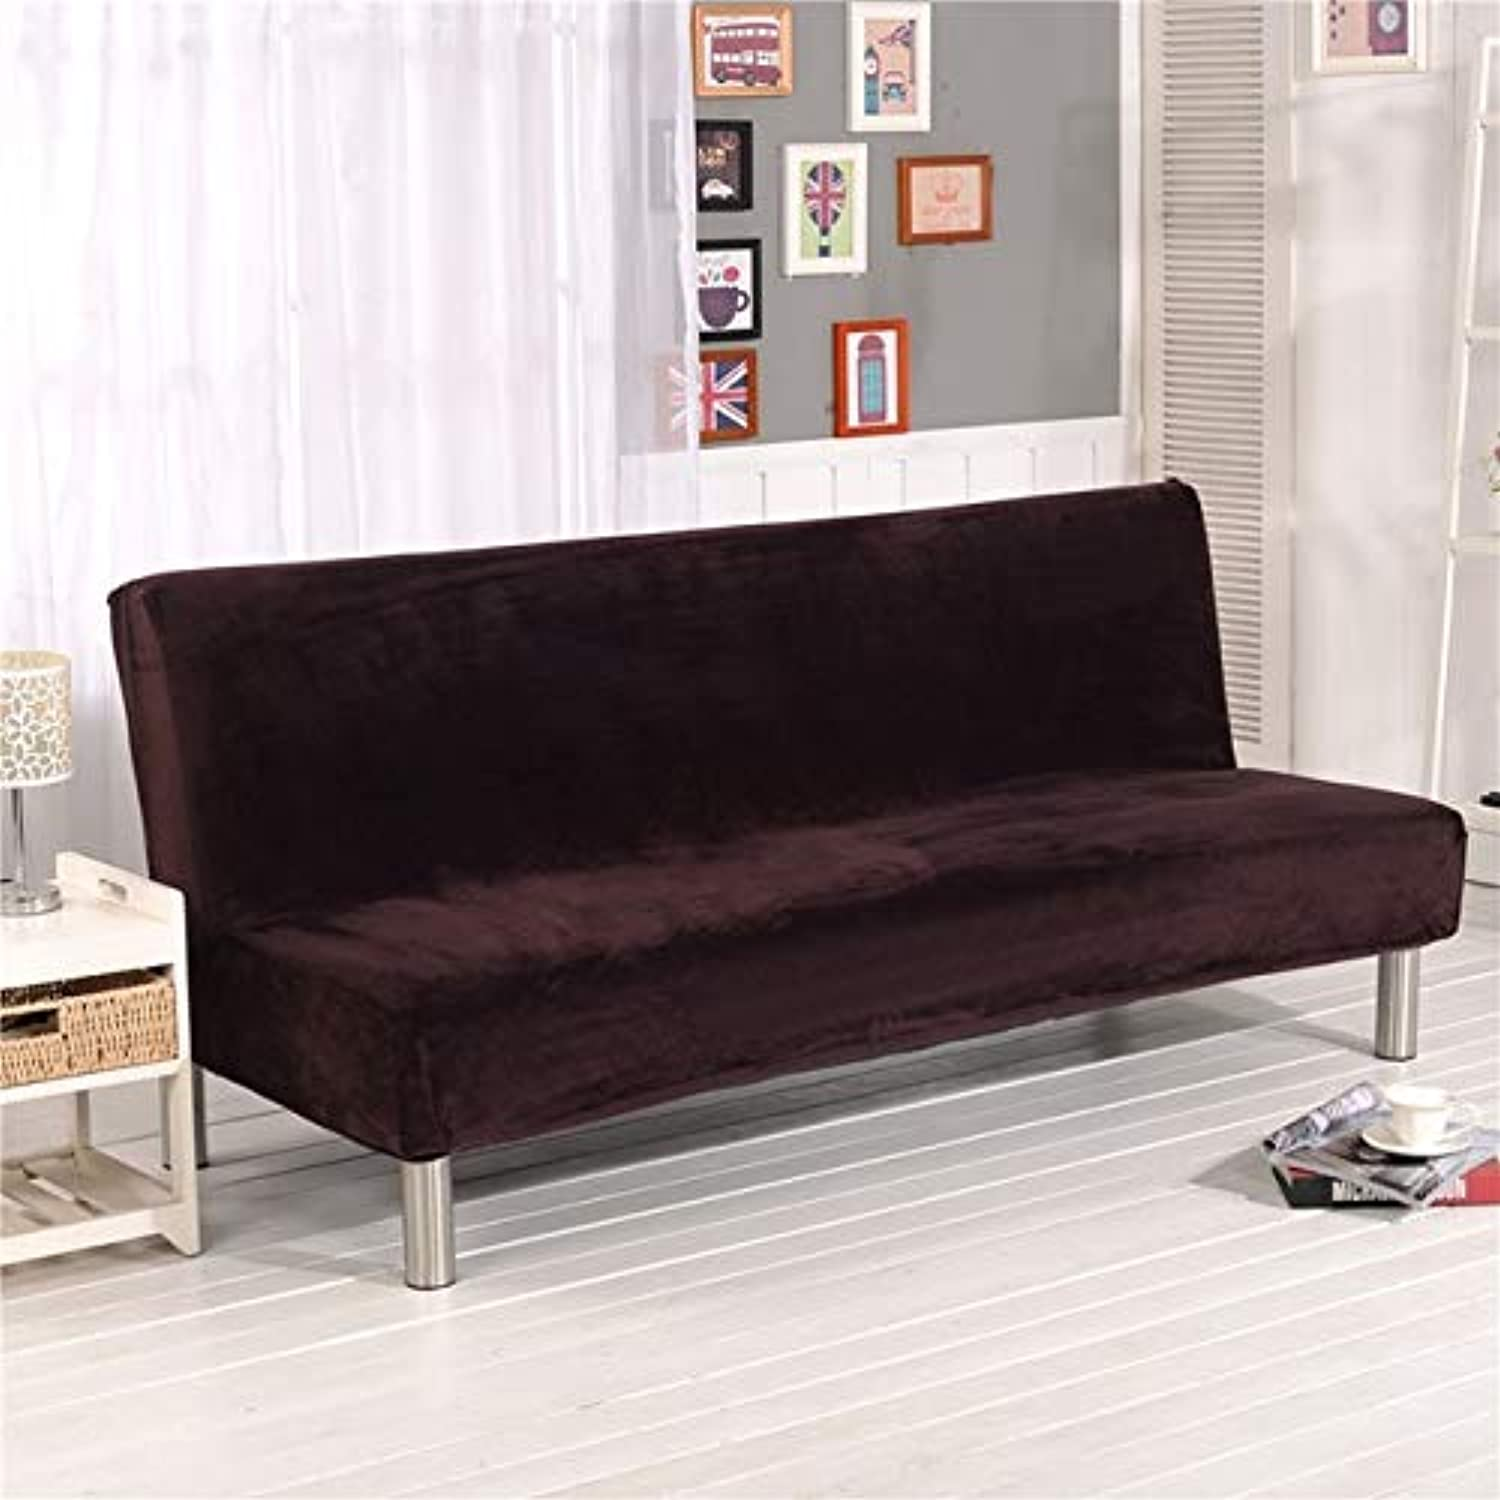 Farmerly 1PC Plush Sofa Cover Wrap All-Inclusive Slip-Resistant Elastic Stretch Furniture Slipcovers No Armrest Folding Sofa Bed Cover   color 1, S160 to 180cm